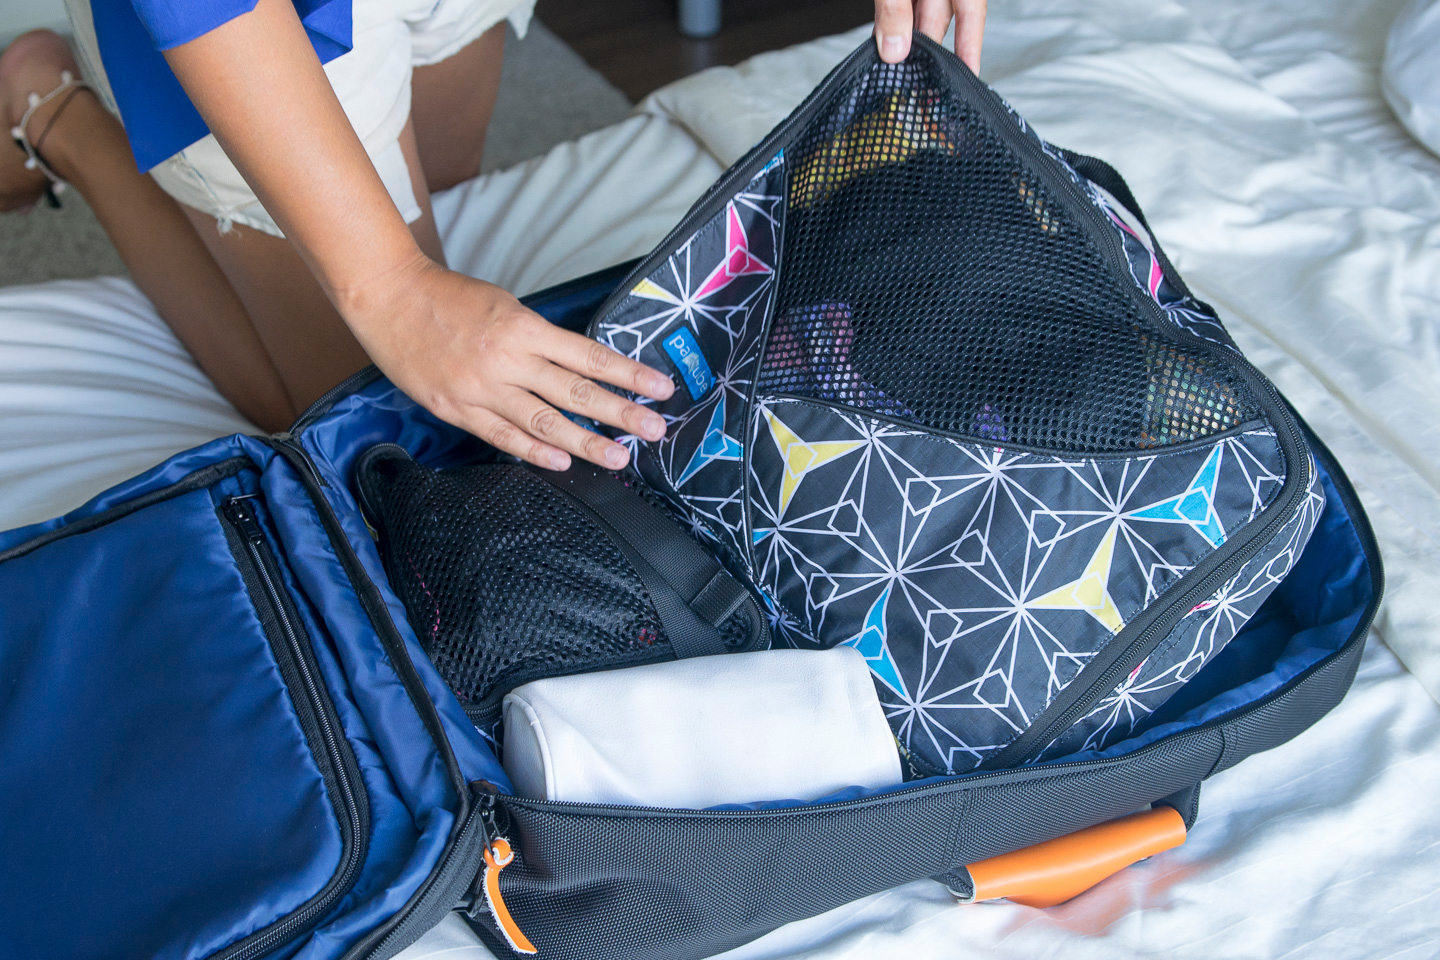 packing the carry on backpack standard luggage